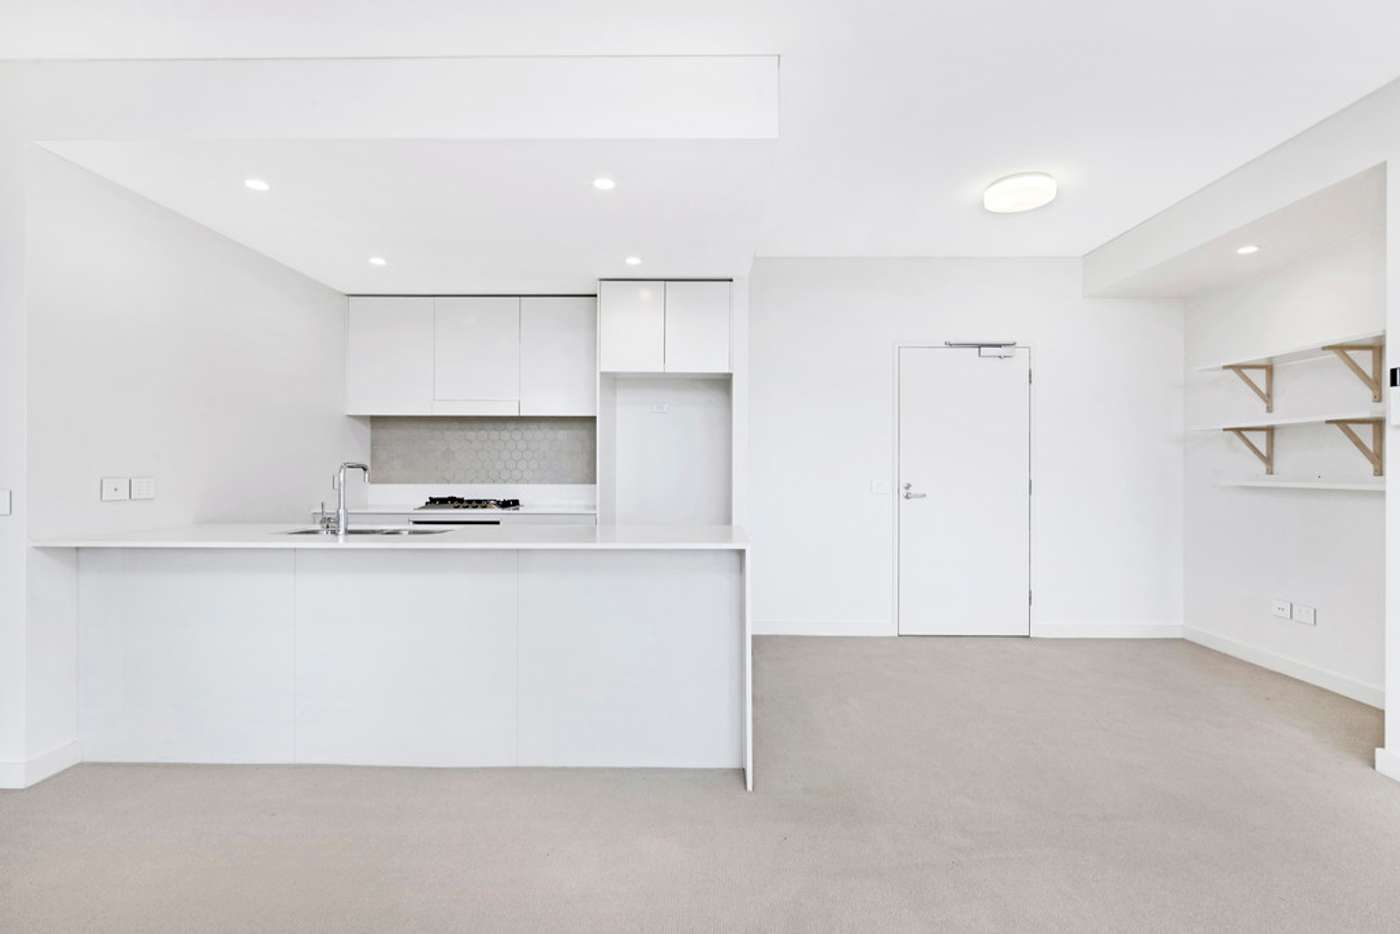 Main view of Homely apartment listing, 707/5 Verona Drive, Wentworth Point NSW 2127